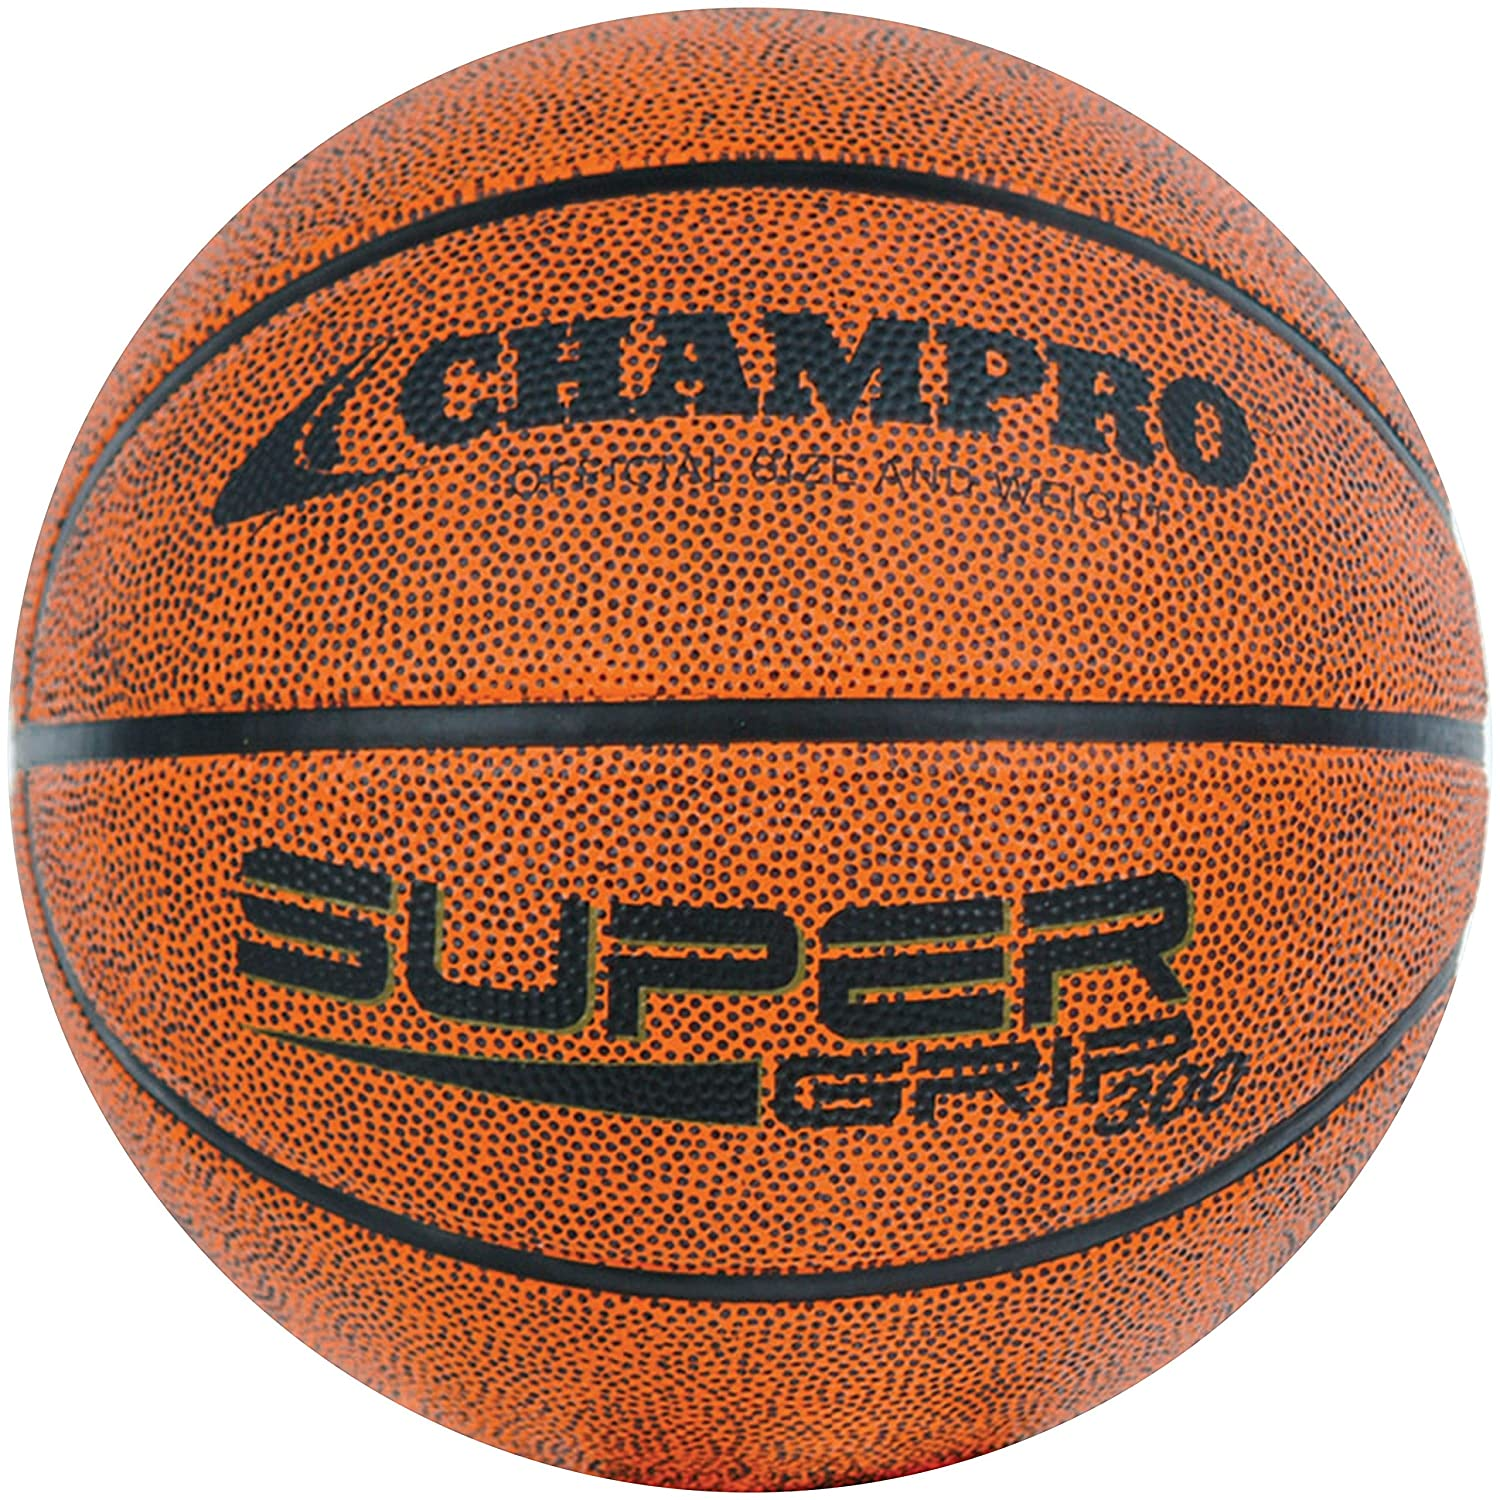 Brown, 28.5 BB32 Champro Womens Easy Grip Rubber Basketball